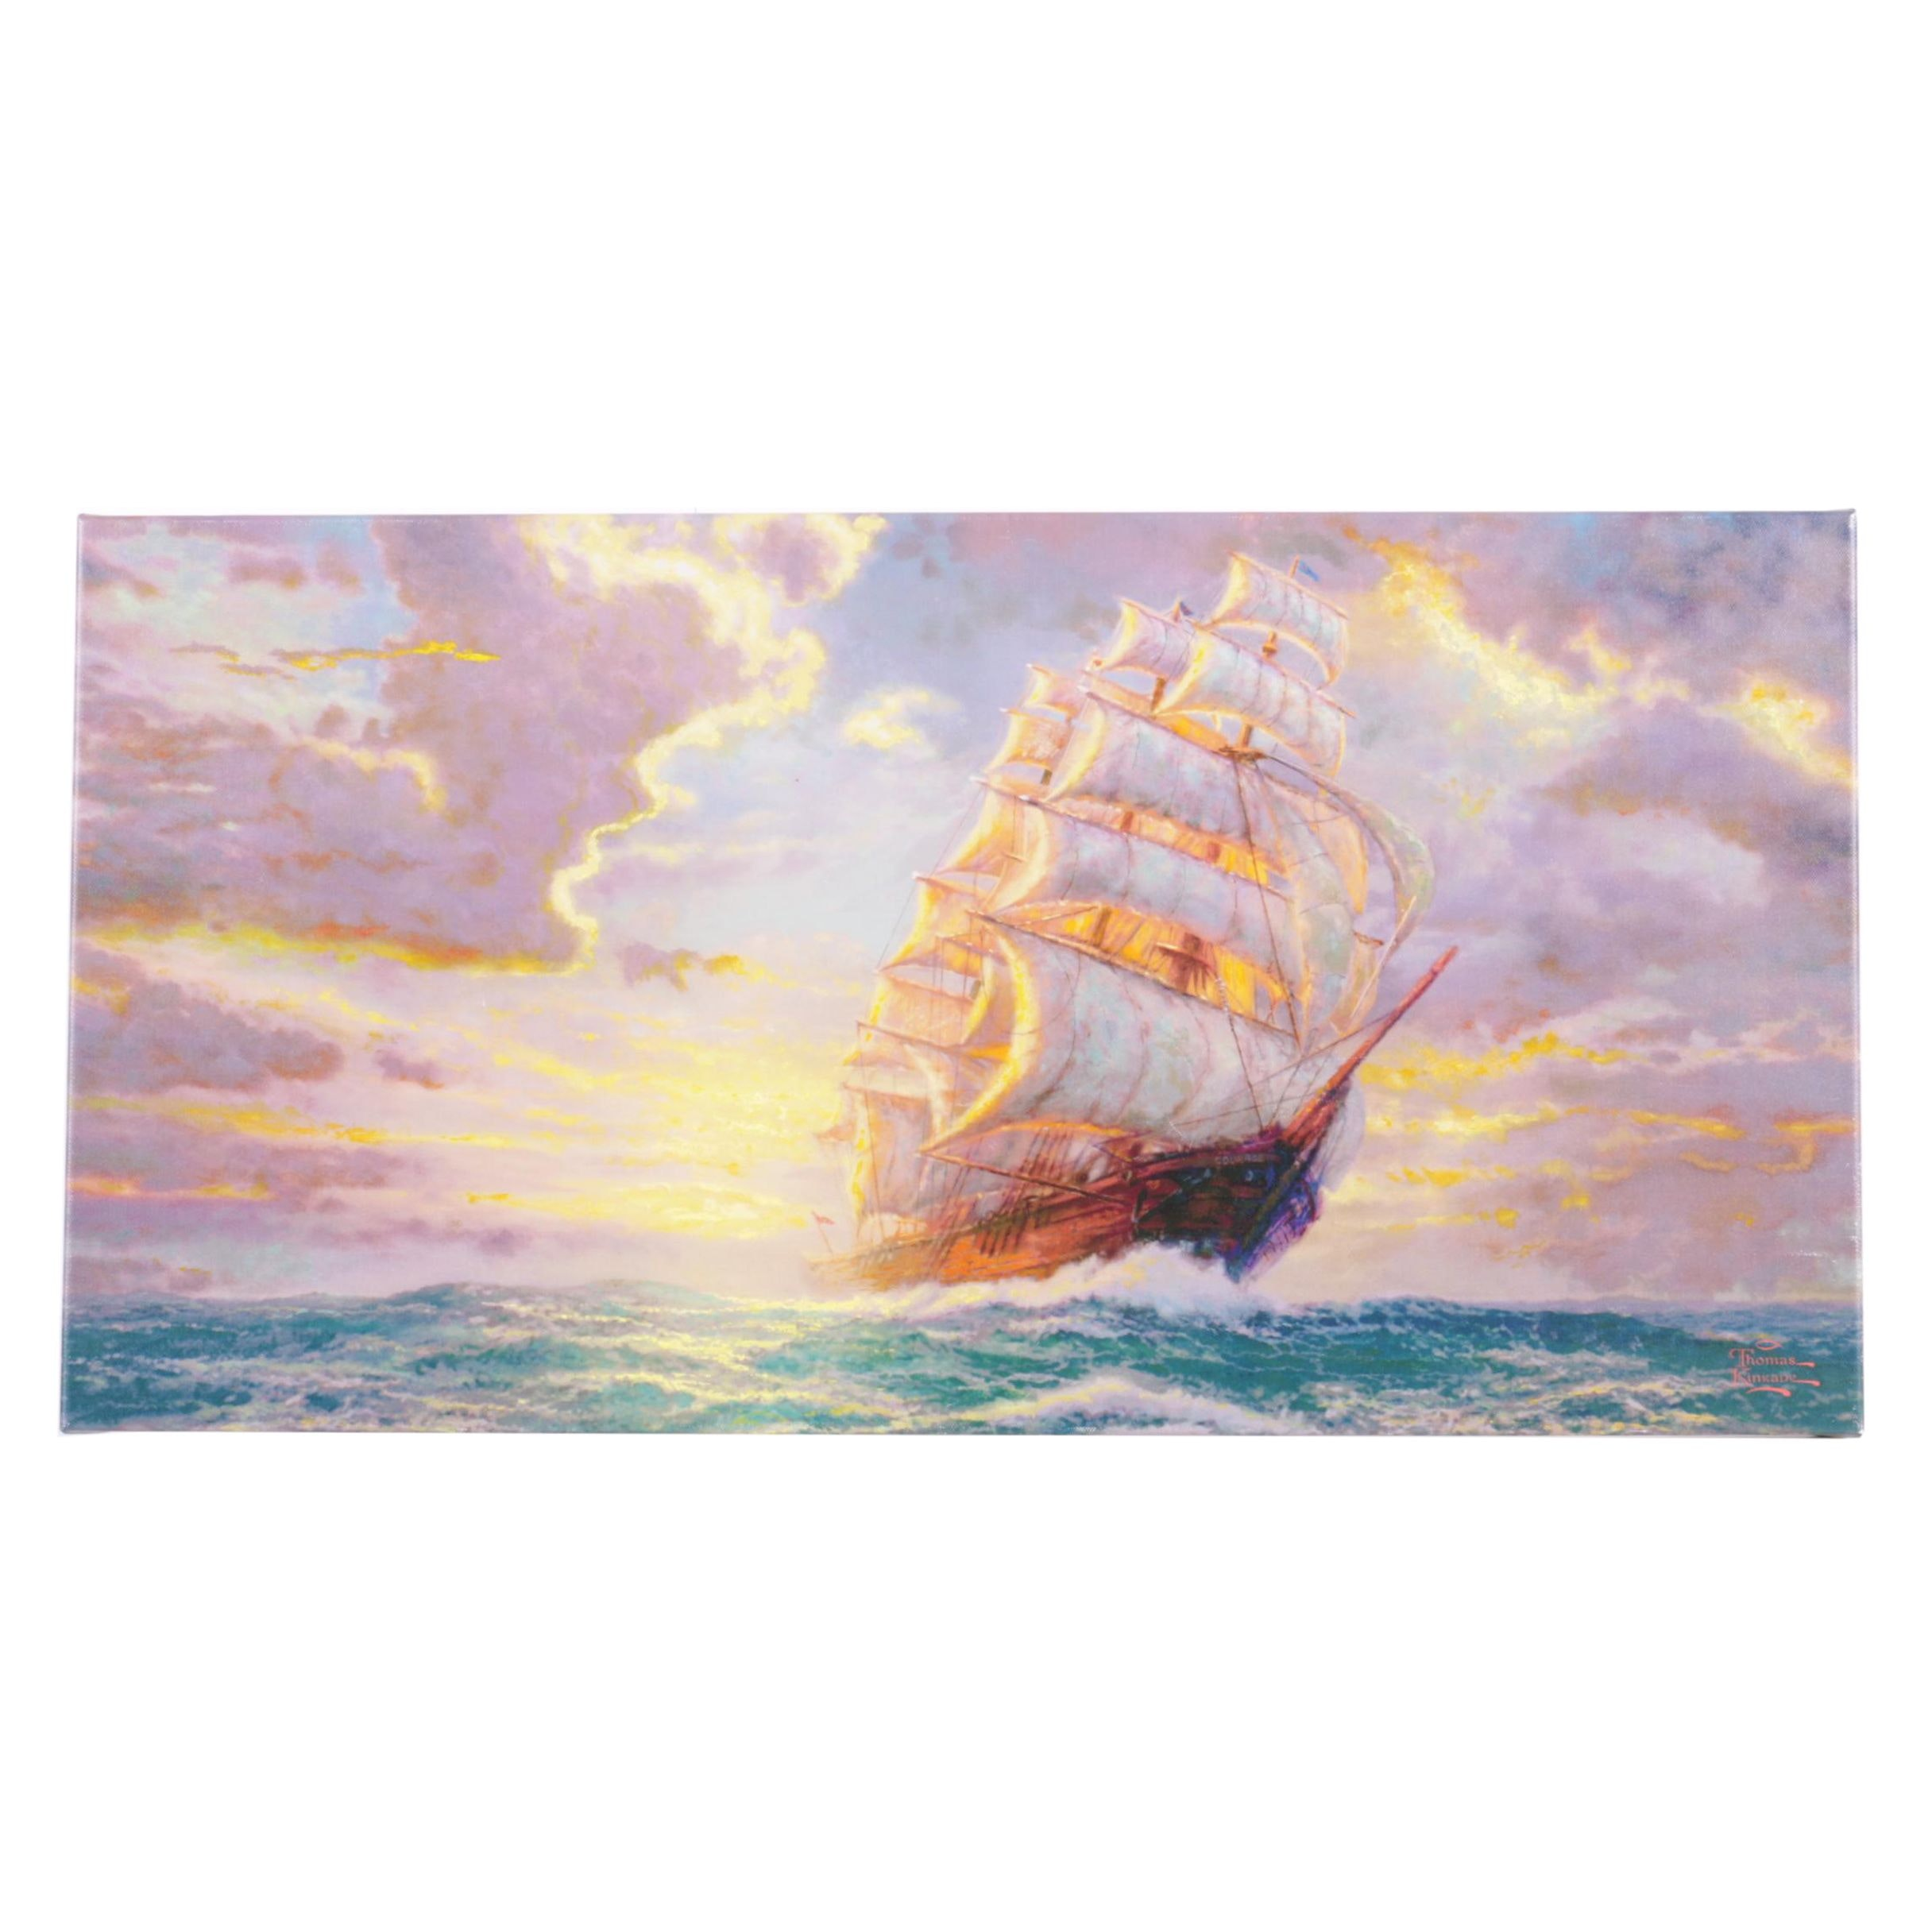 "Giclee on Canvas After Thomas Kinkade ""Courageous Voyage"""